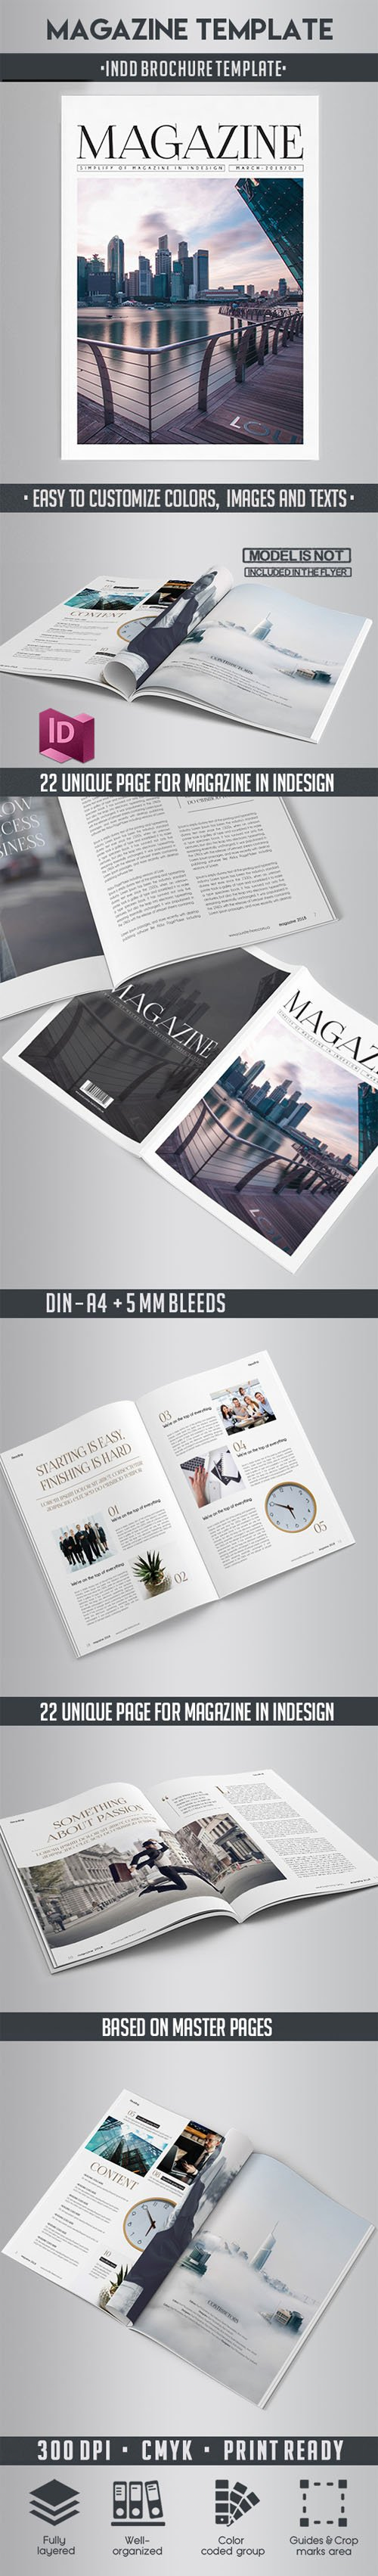 Magazine Indd Brochure Template